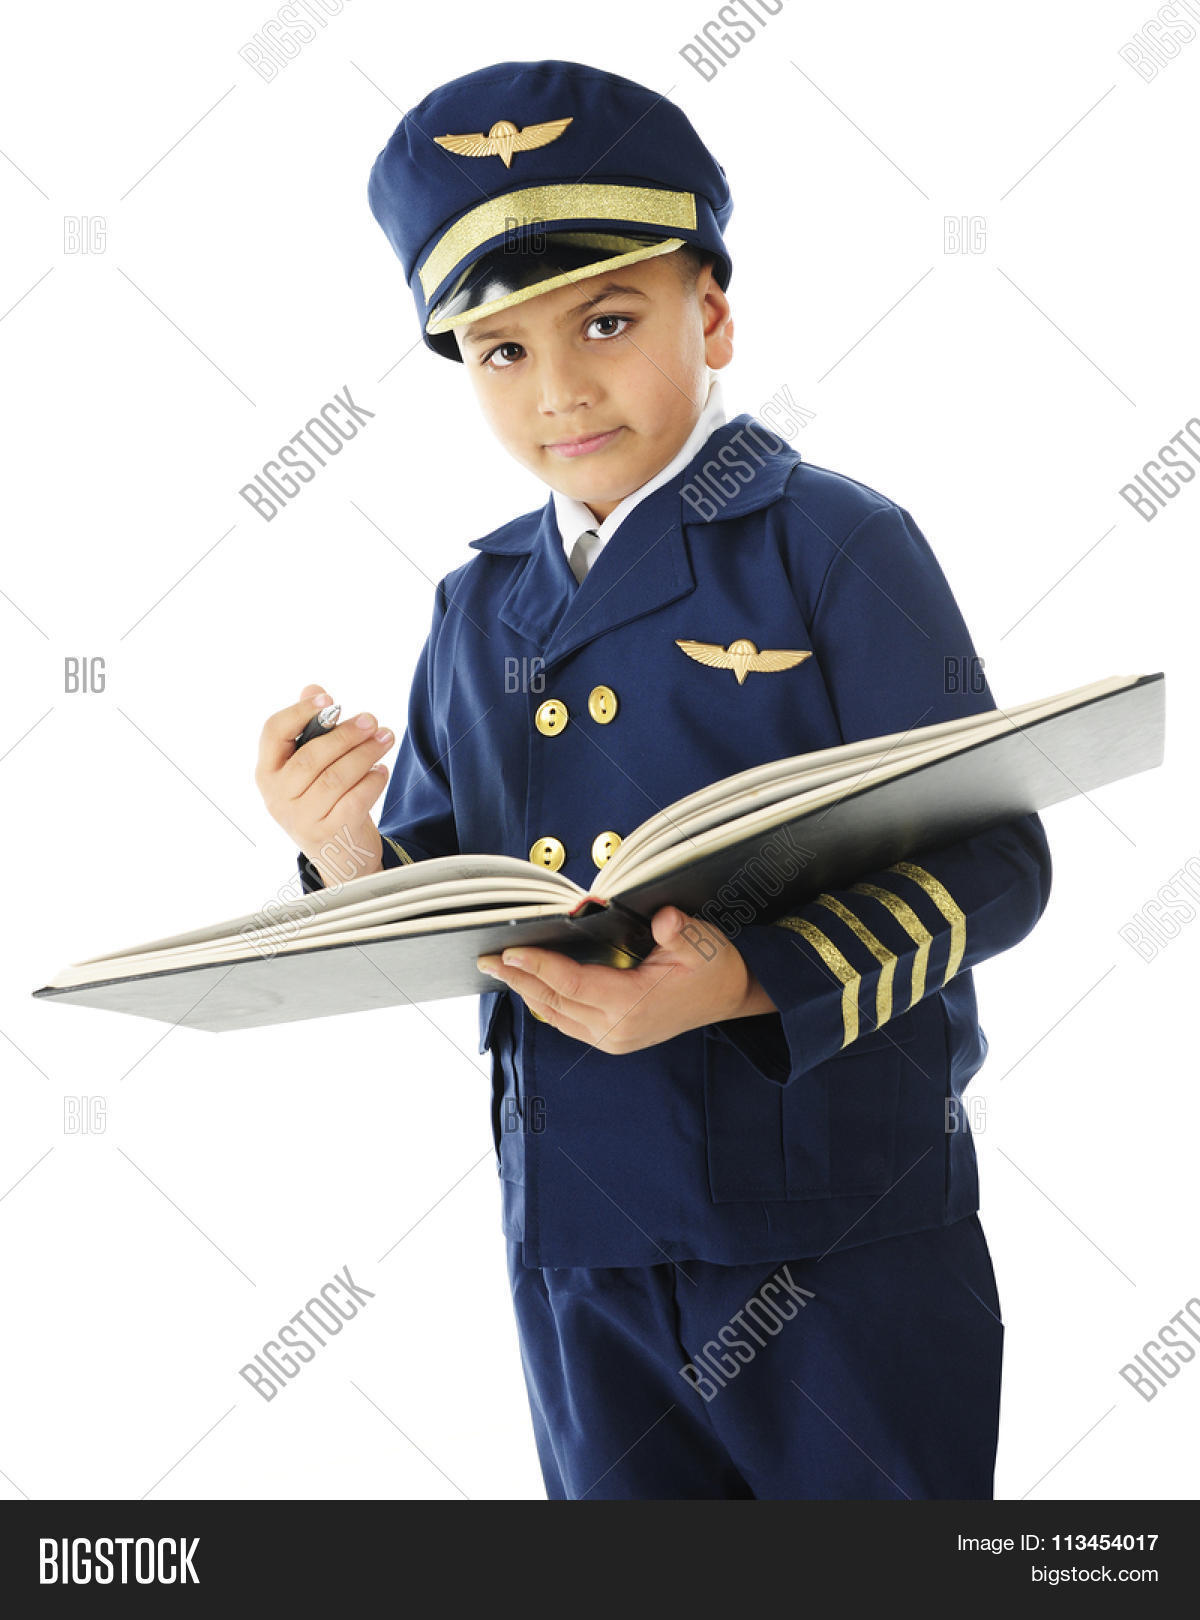 airline,background,black,blue,book,boy,buttons,child,elementary,gold,handsome,hat,holding,isolated,jacket,kid,logbook,male,navy,on,opened,pen,person,pilot,prepared,signing,standing,stripes,uniform,white,wings